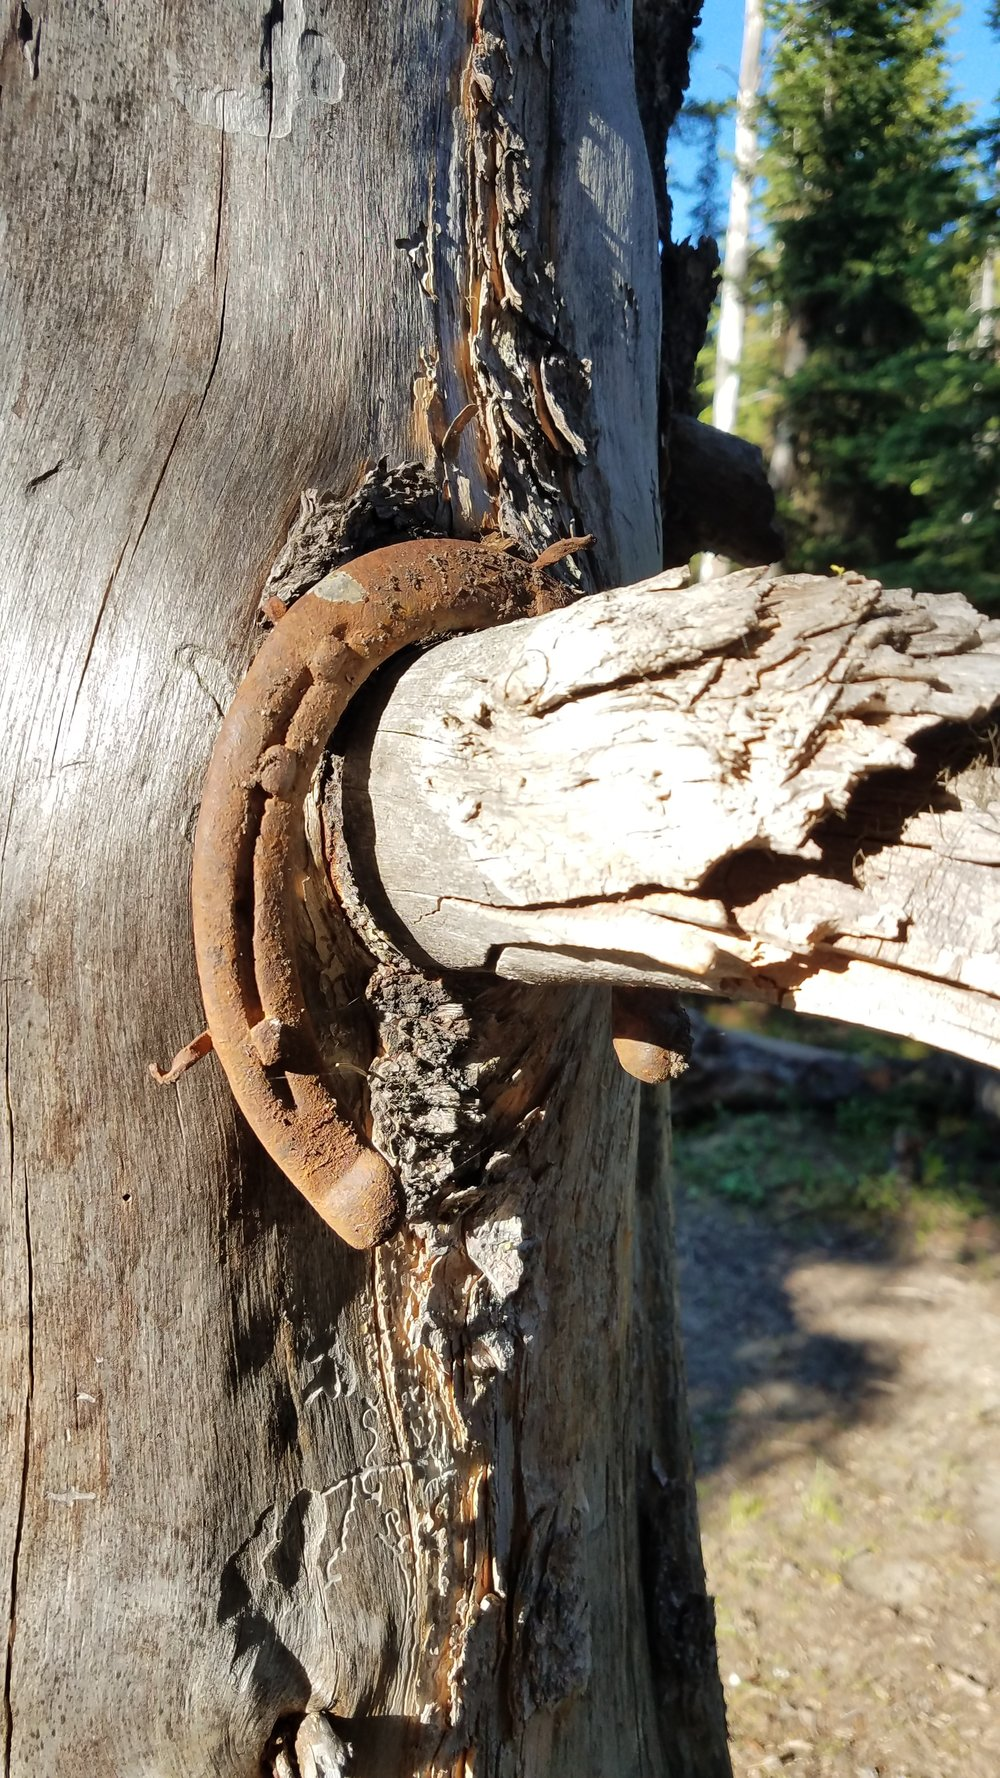 An old horseshoe hangs from a tree where I camped one night.